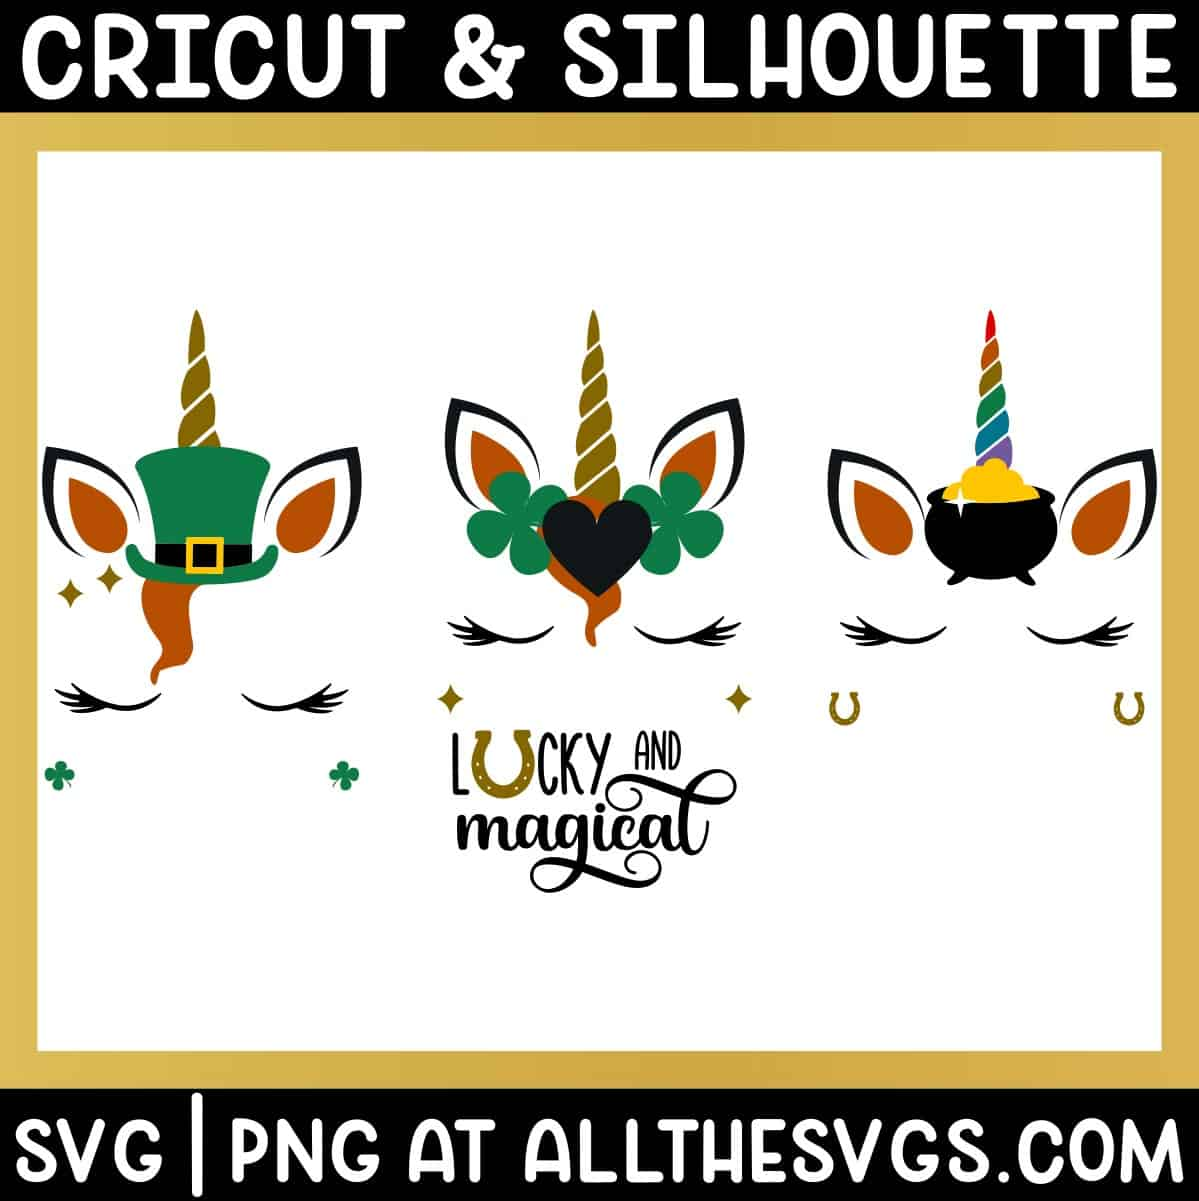 free st patrick's day unicorn face svg png with ear, horn, eyelashes, leprechaun hat, pot of gold, clover, and horseshoe.